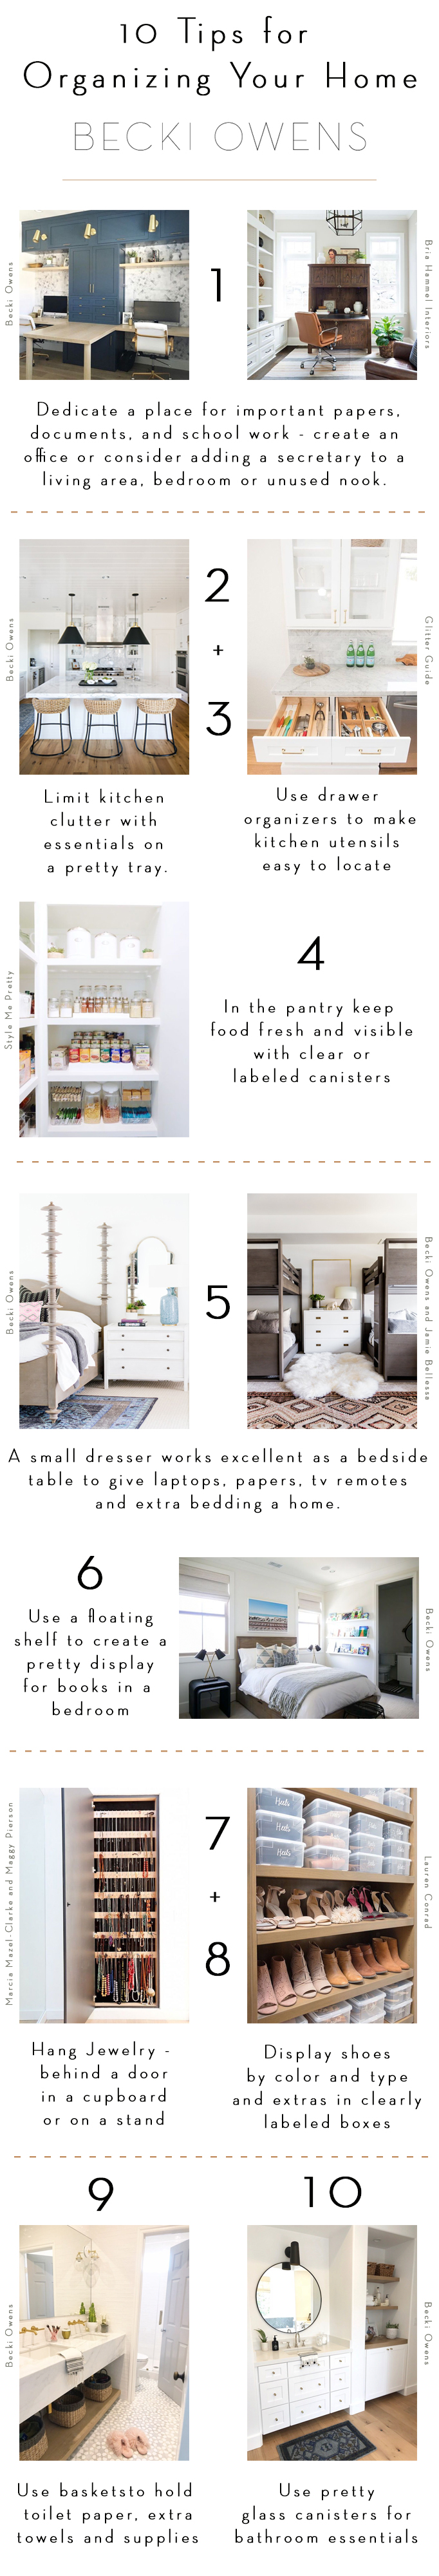 10 tips for organizing your homes